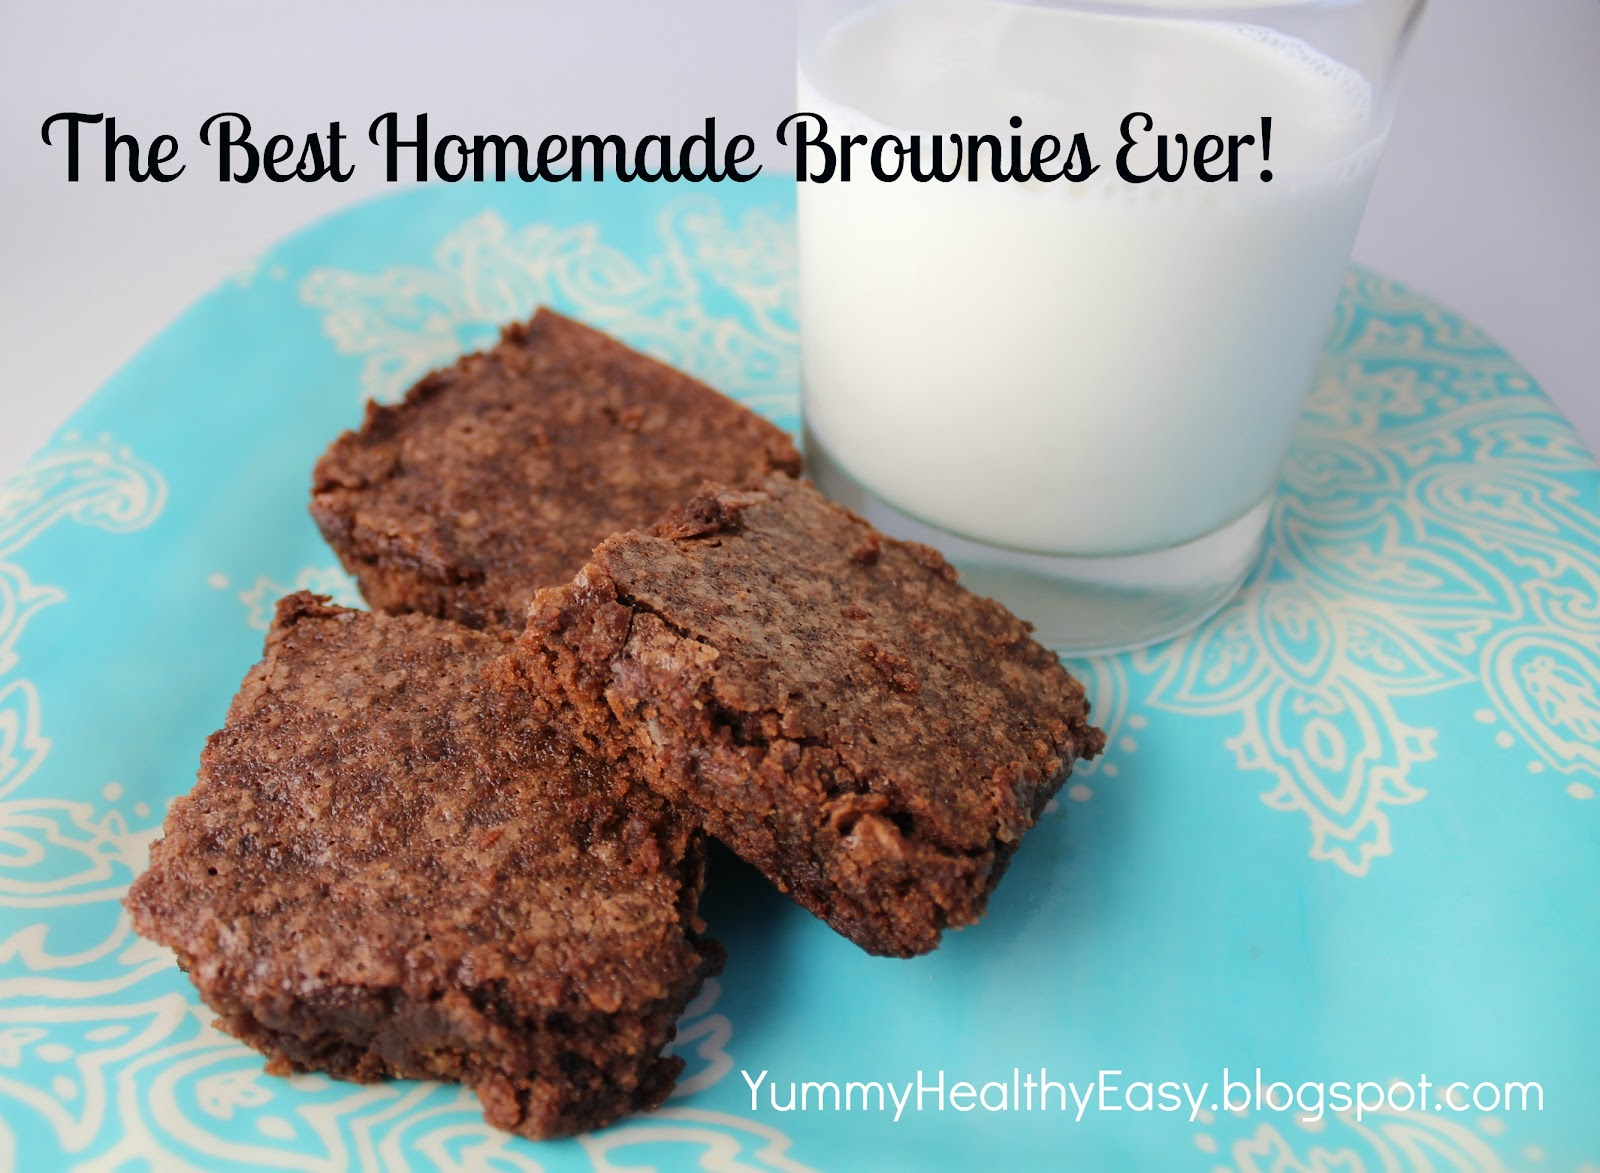 The Best Homemade Brownies - Yummy Healthy Easy